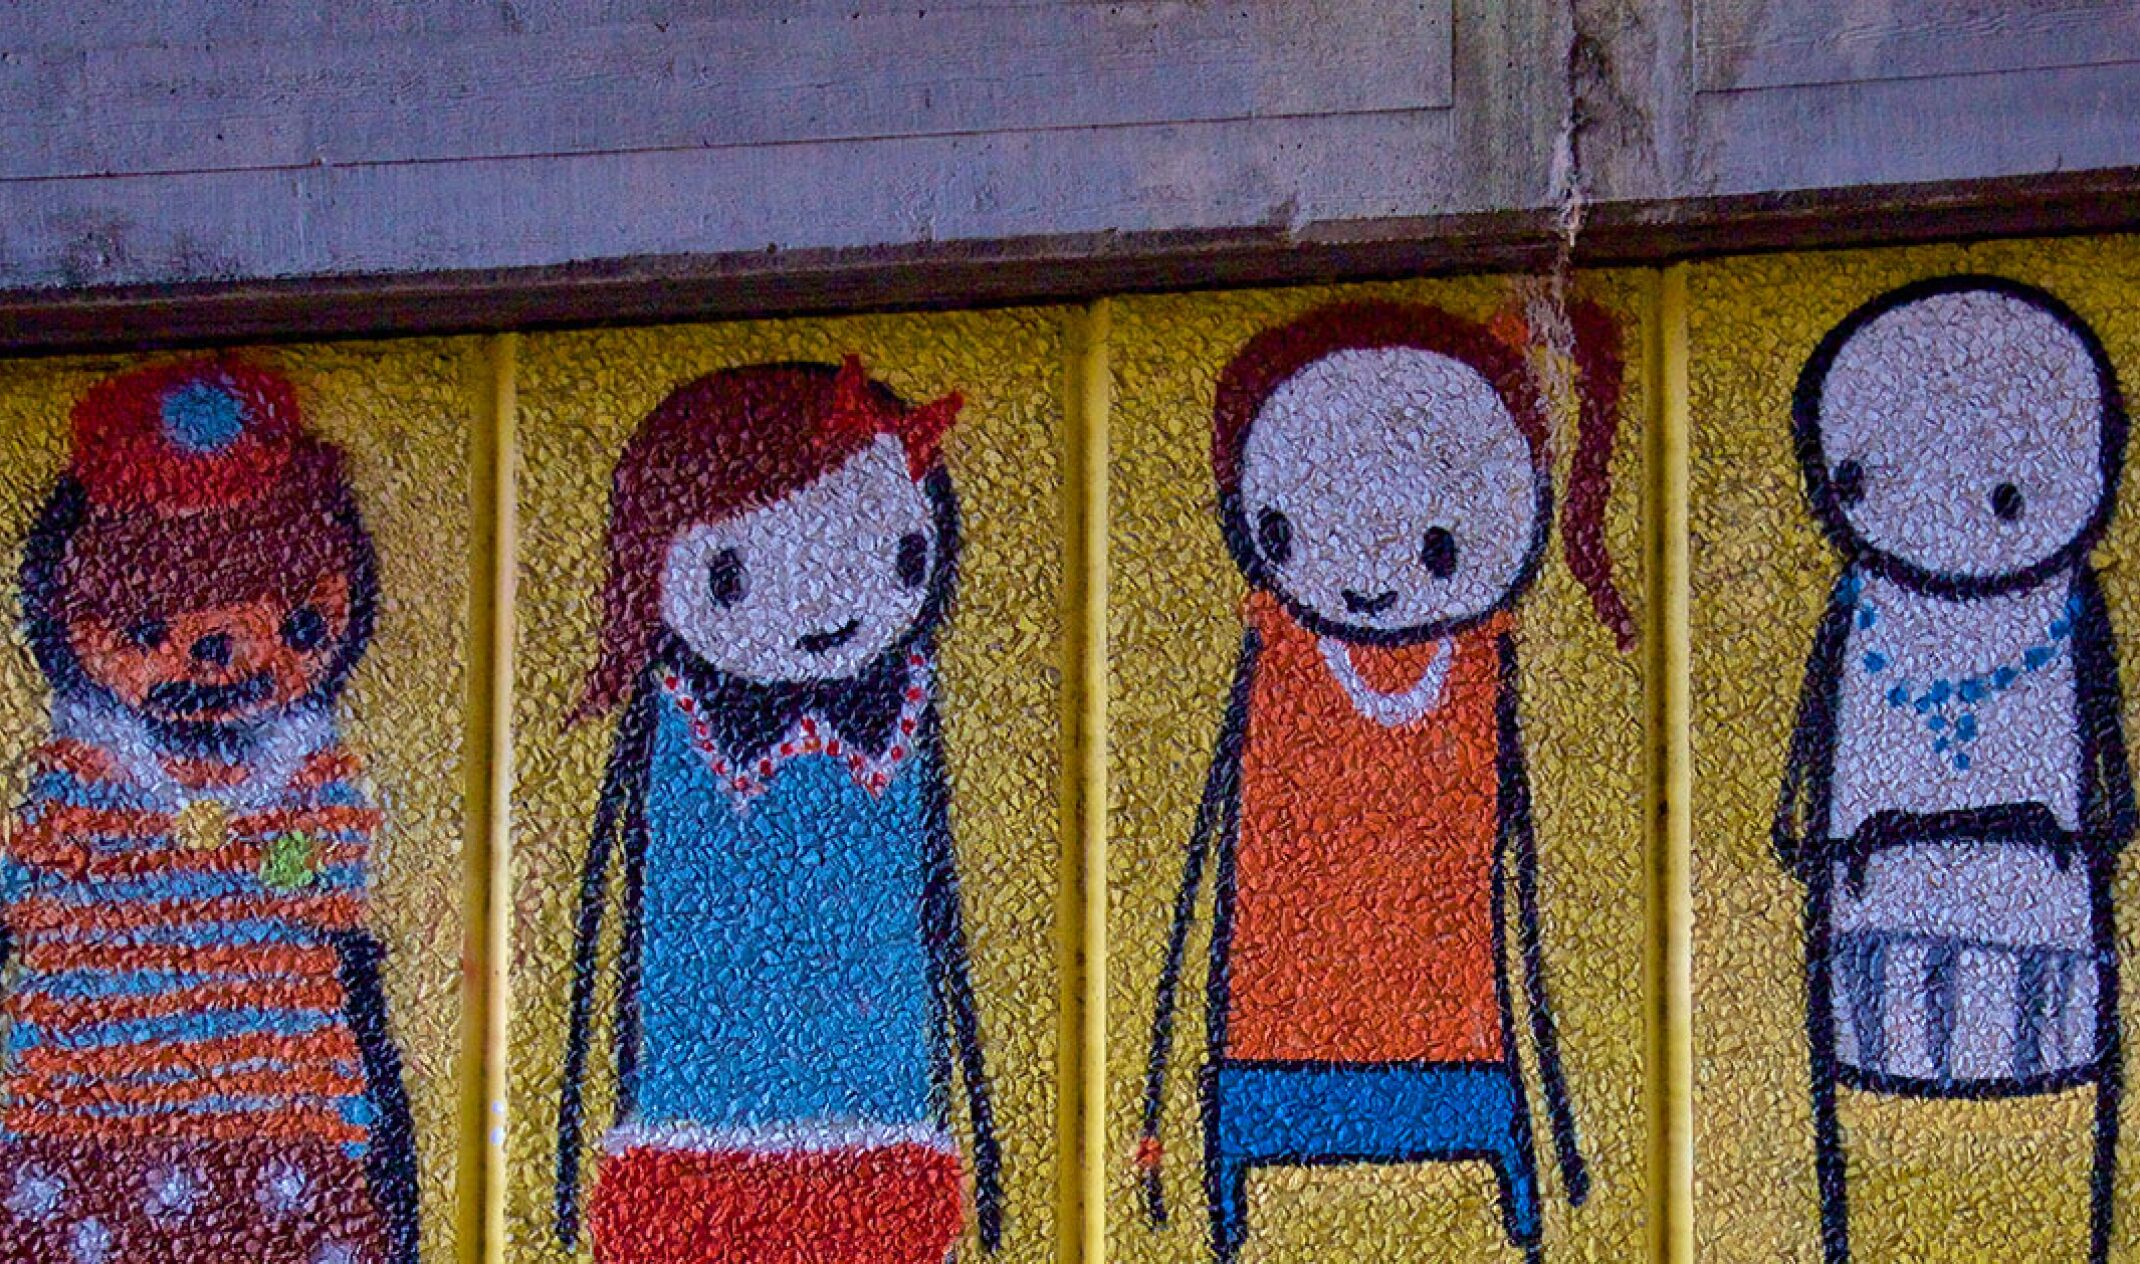 wall of graffiti with five stick figures